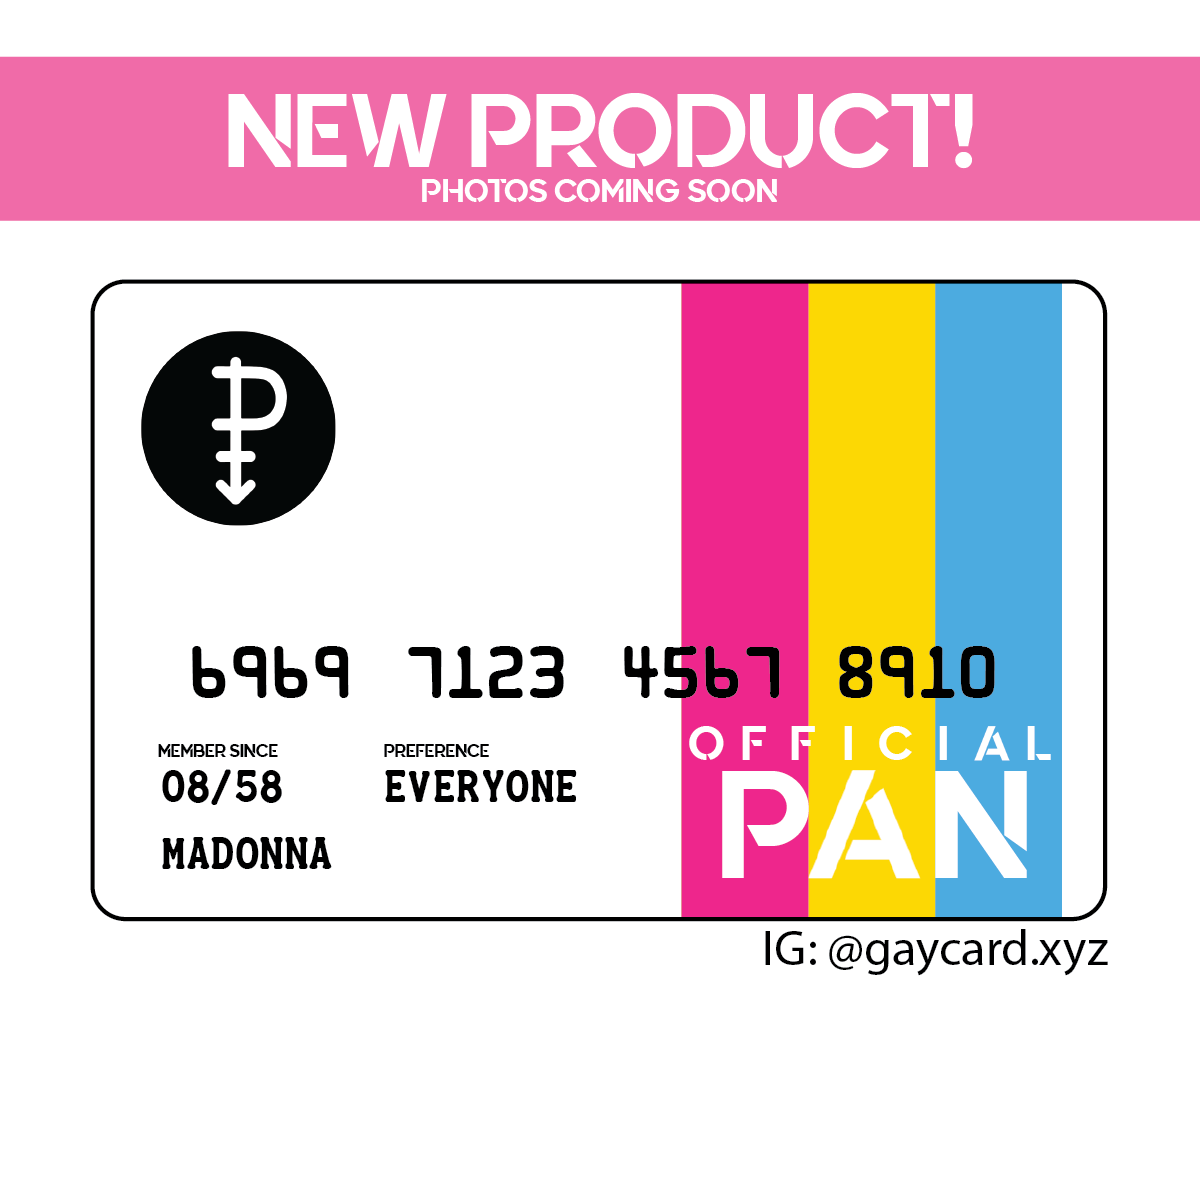 Official PAN Card - www.gaycard.xyz